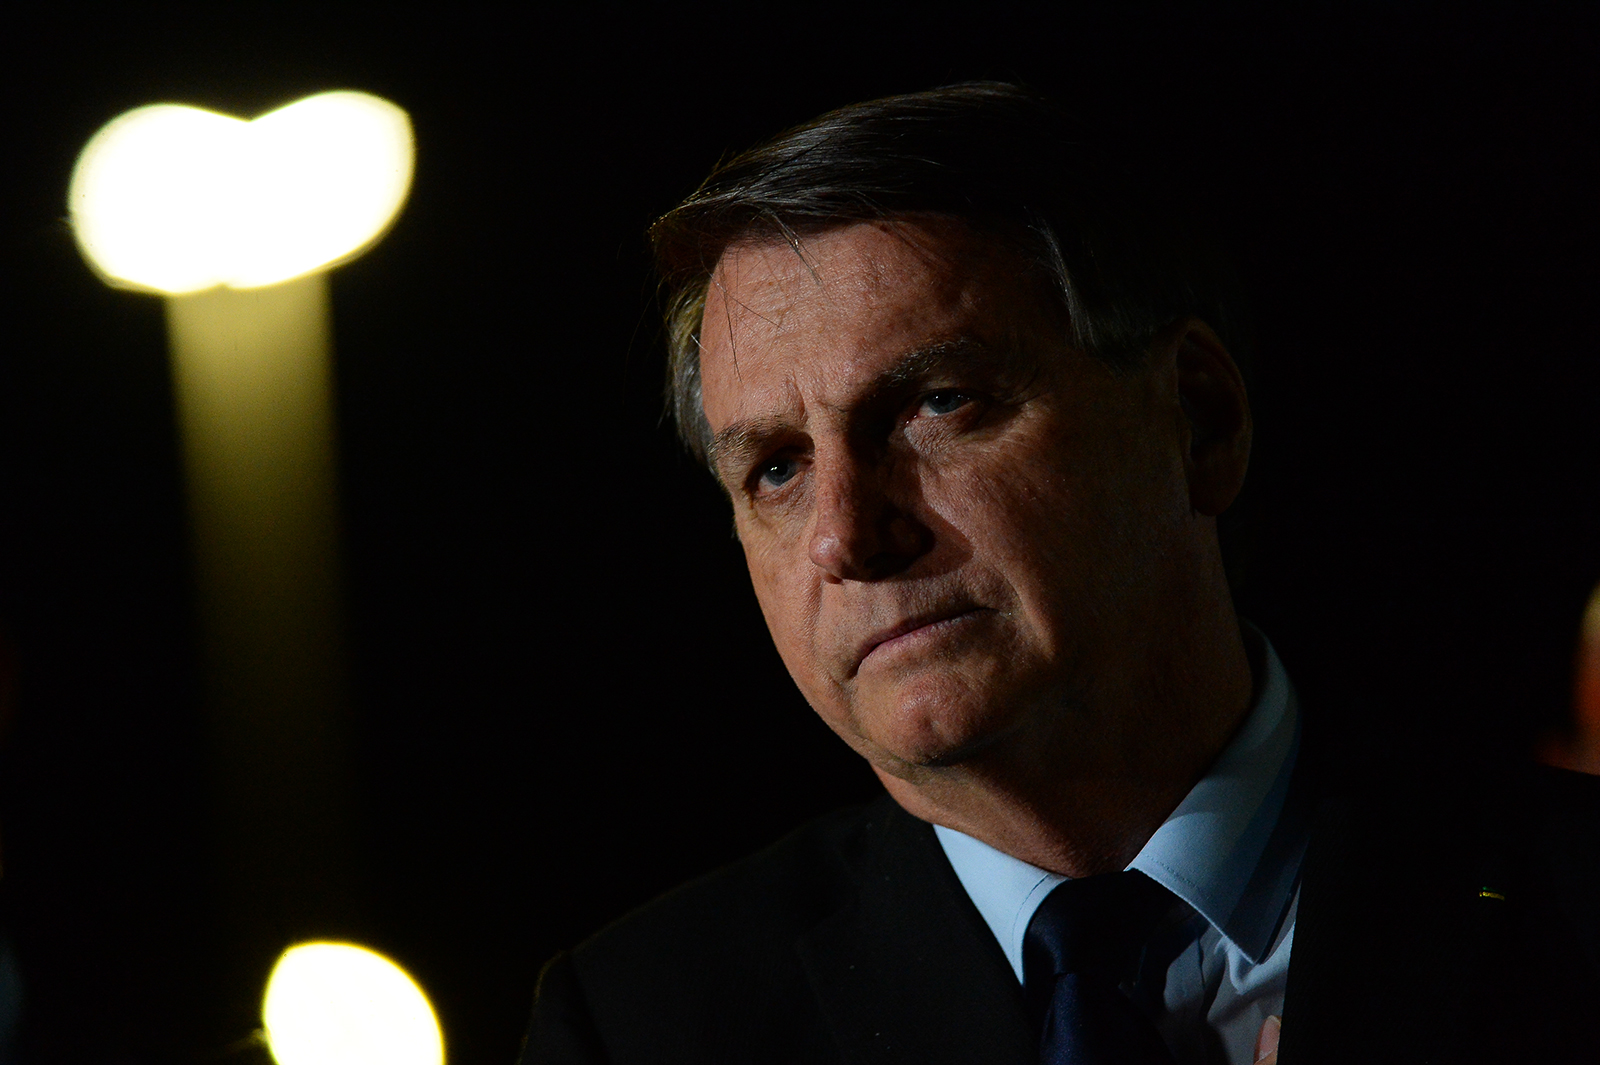 President of Brazil Jair Bolsonaro reacts during a conference with the press and supporters at Alvorada Palace on June 5,  in Brasilia, Brazil.